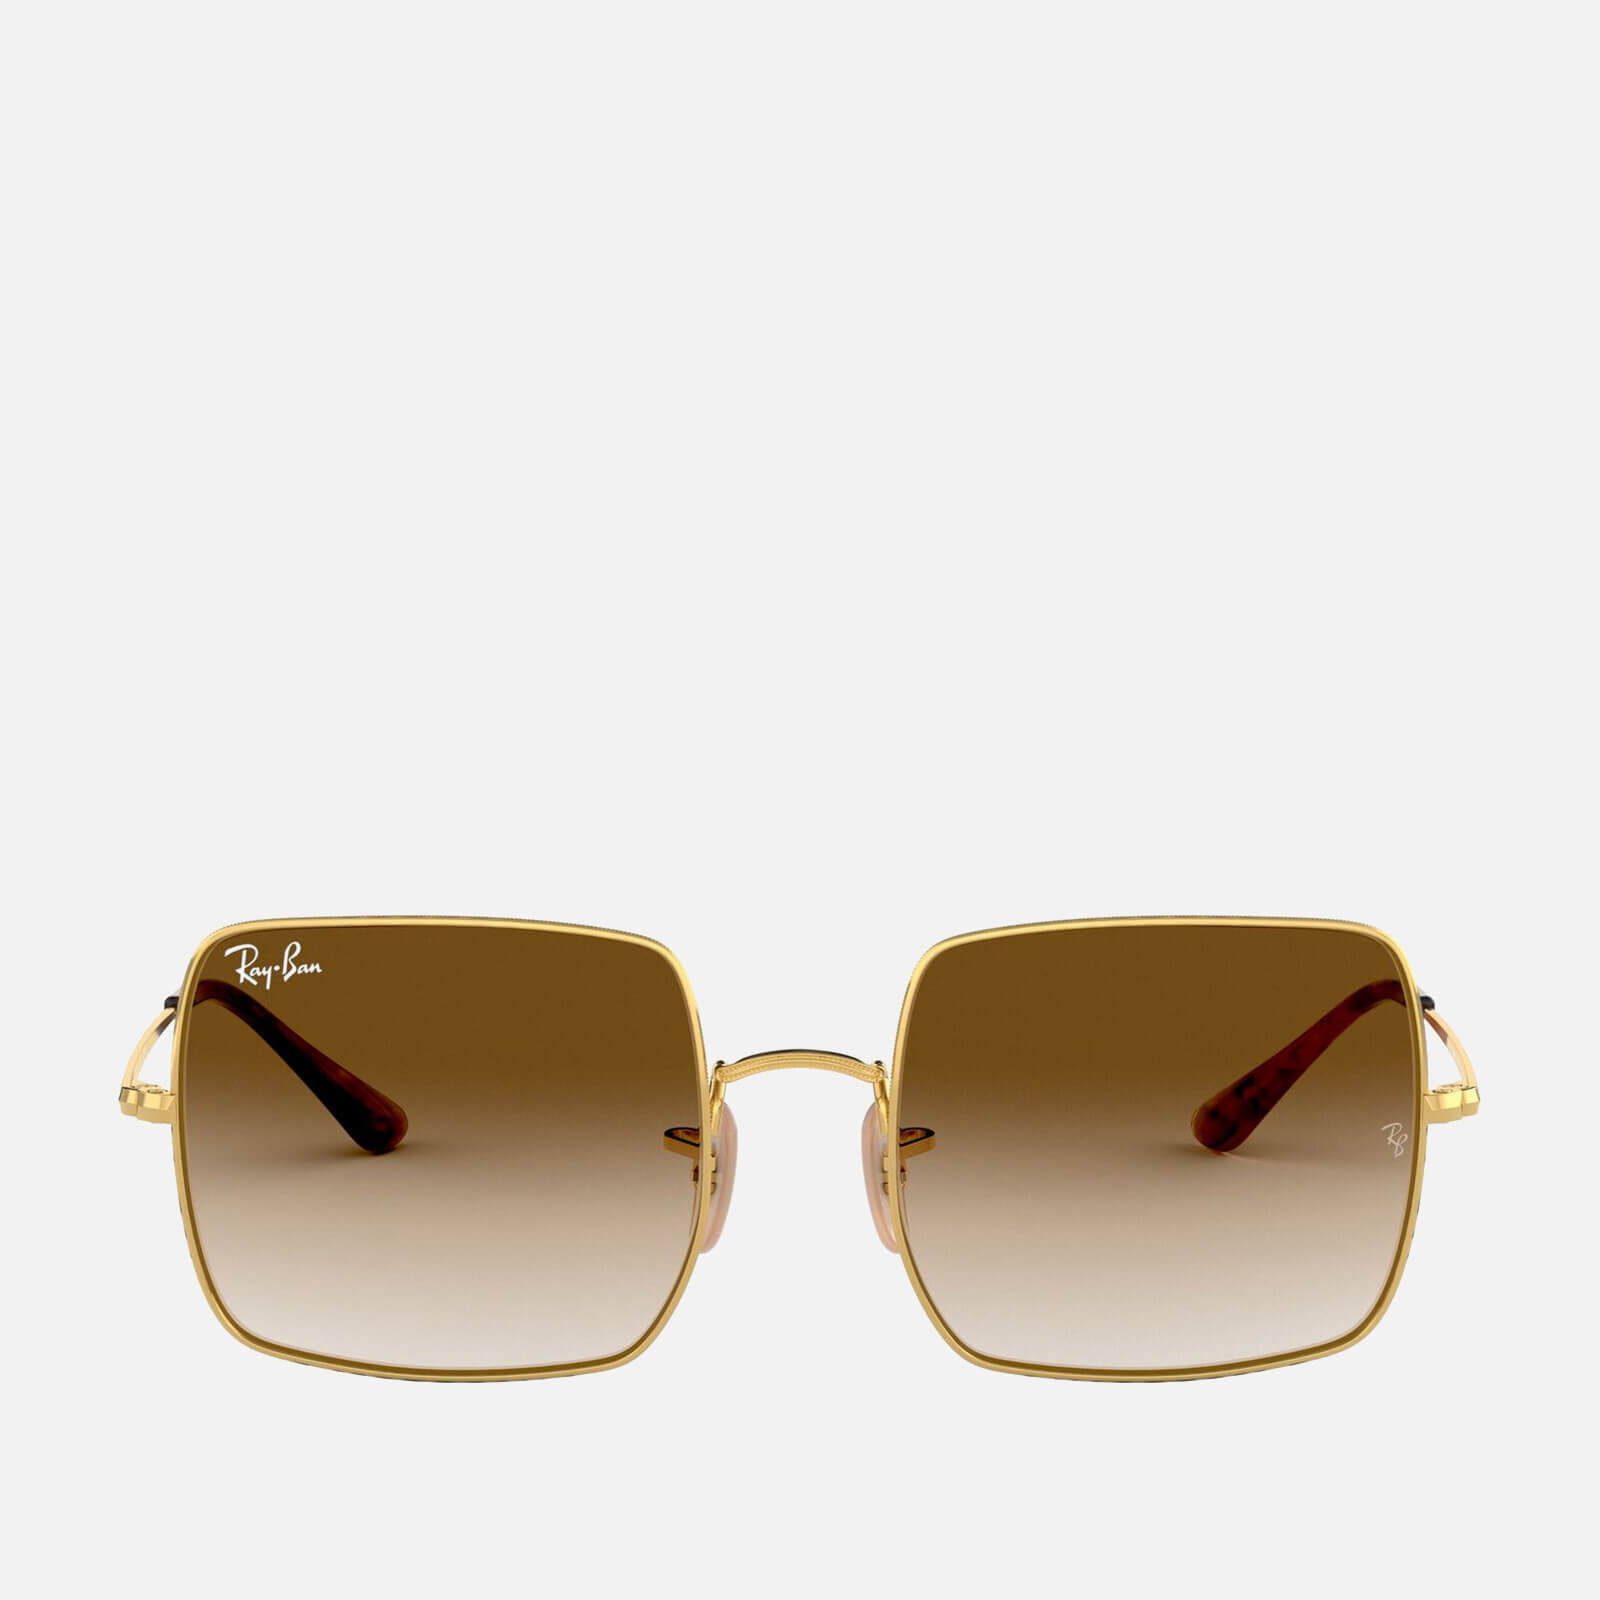 Ray-Ban Women's Square Oversized Metal Sunglasses - Gold